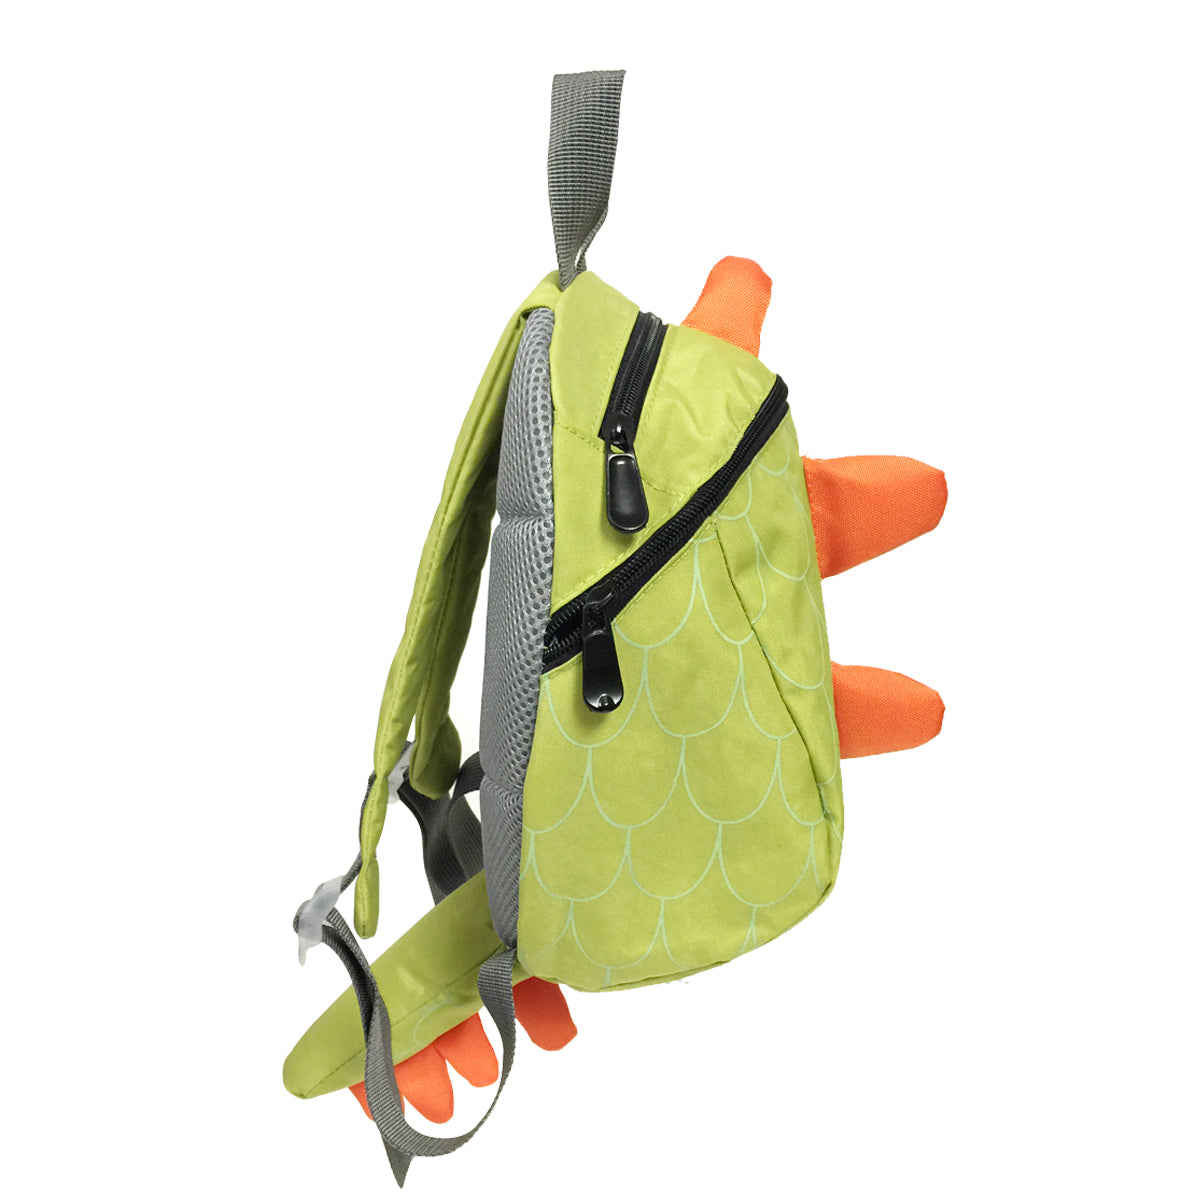 Wrapables Children's Dinosaur Backpack Schoolbag, Light Green